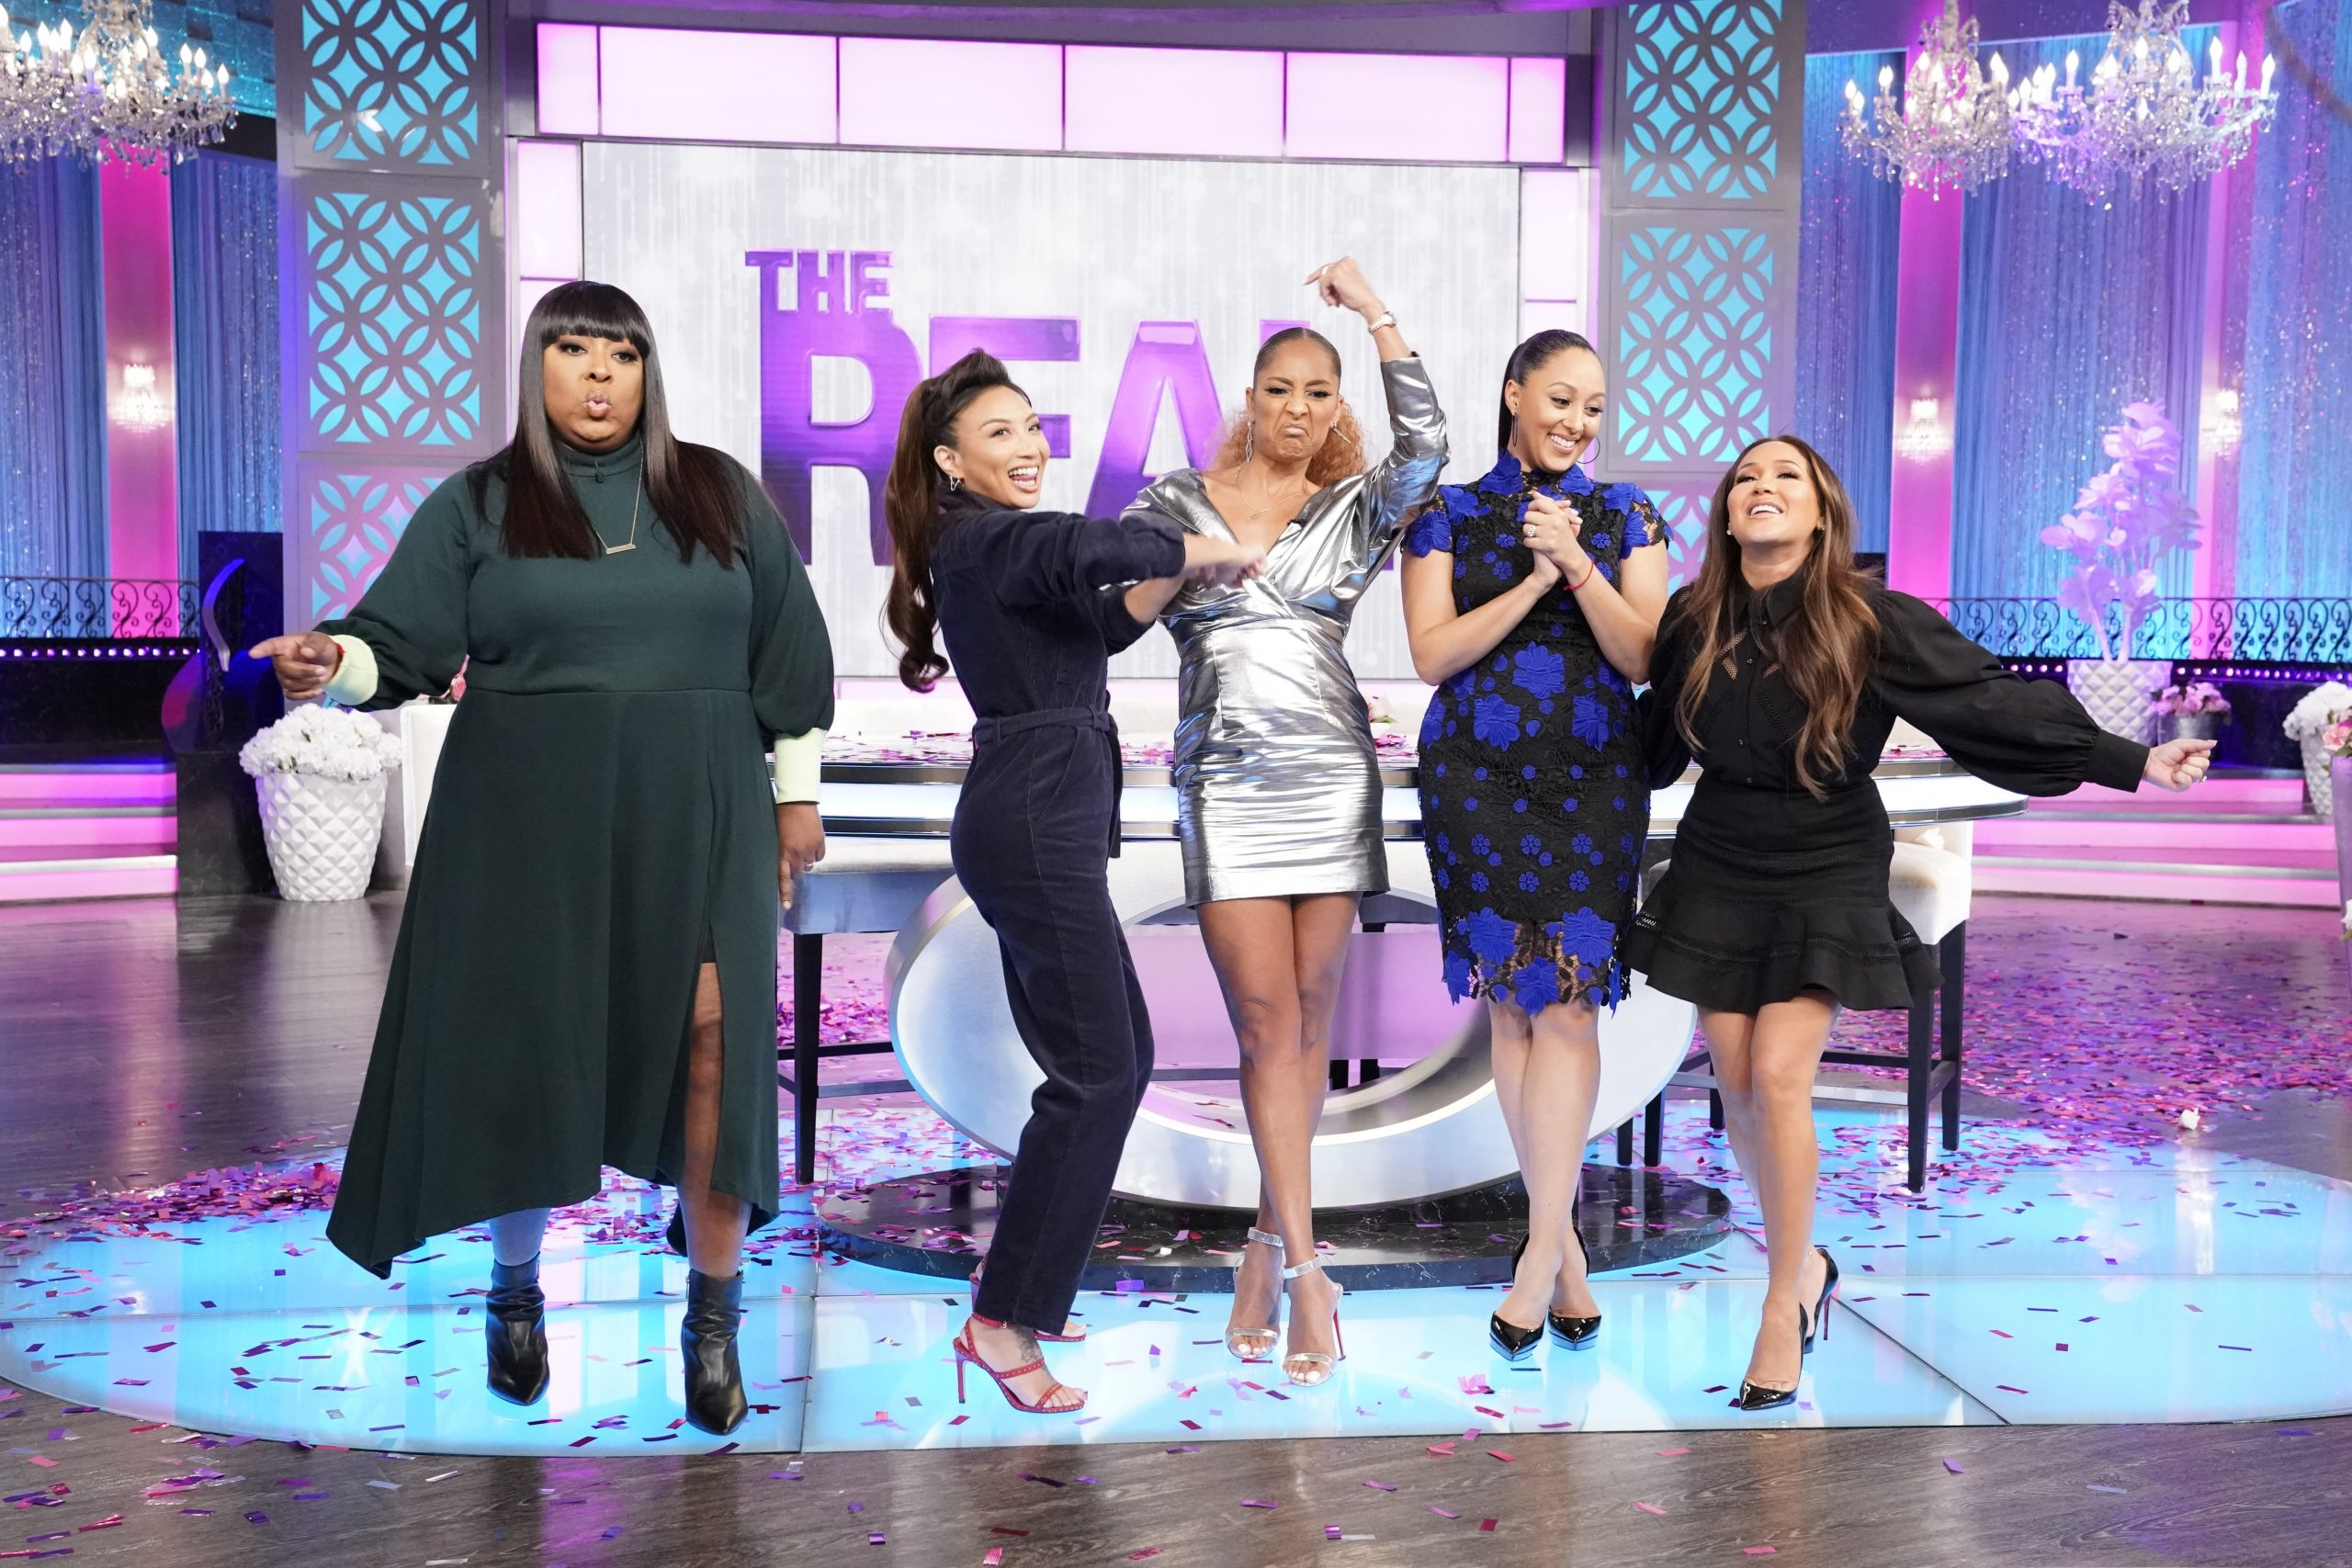 Amanda Seales Makes Her Debut As THE REAL's New Co-Host And Mixed-ish's Arica Himmel Stops By!